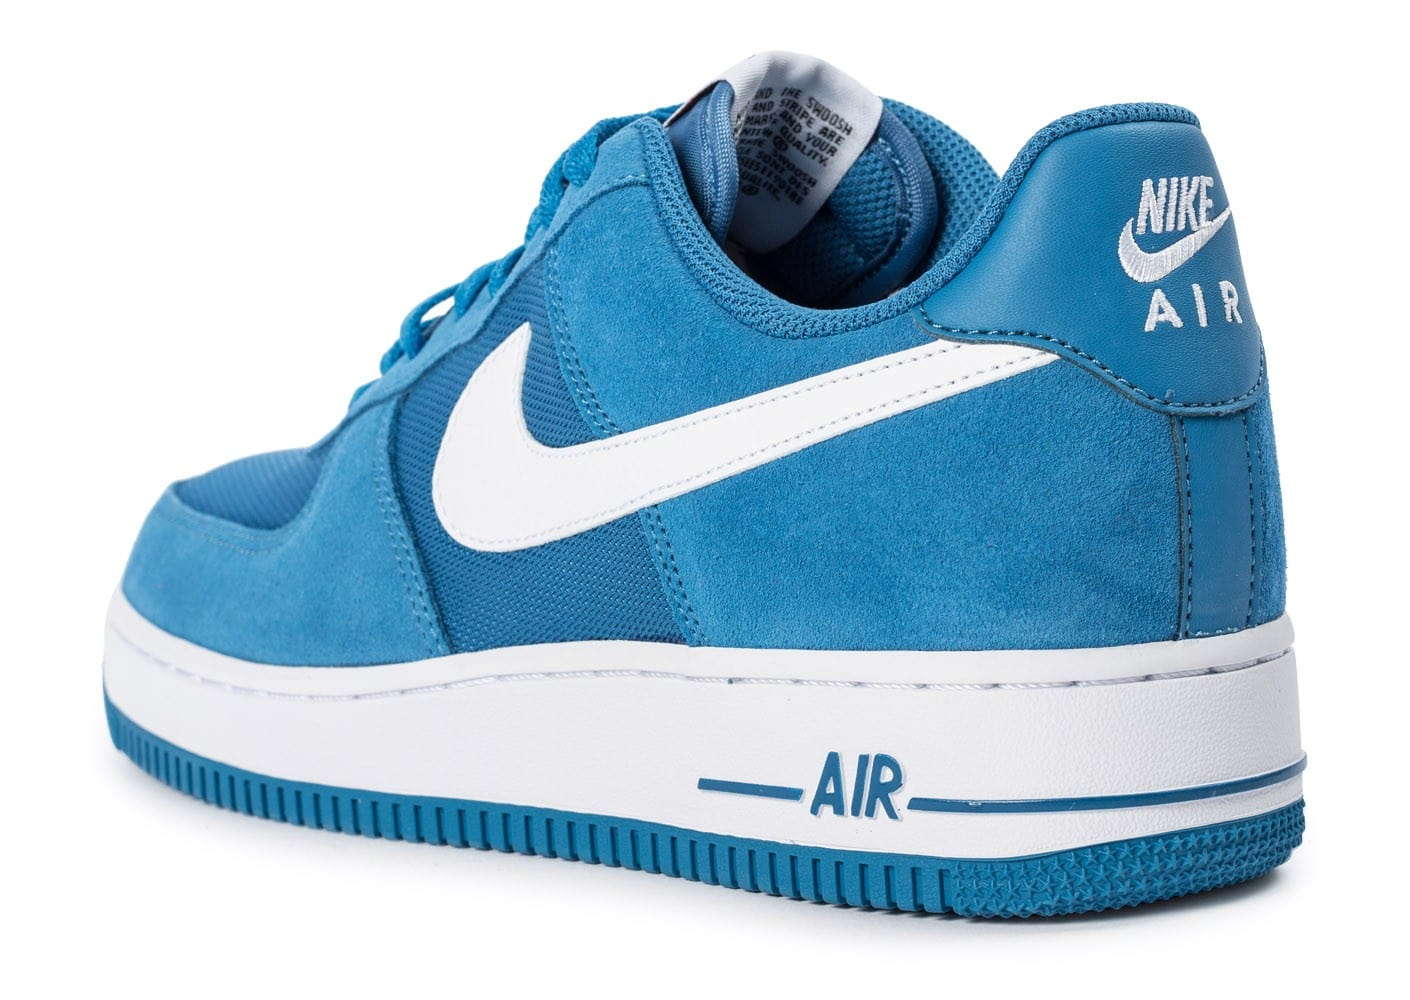 ... Chaussures Nike Air Force 1 Suede bleue vue arrière ...